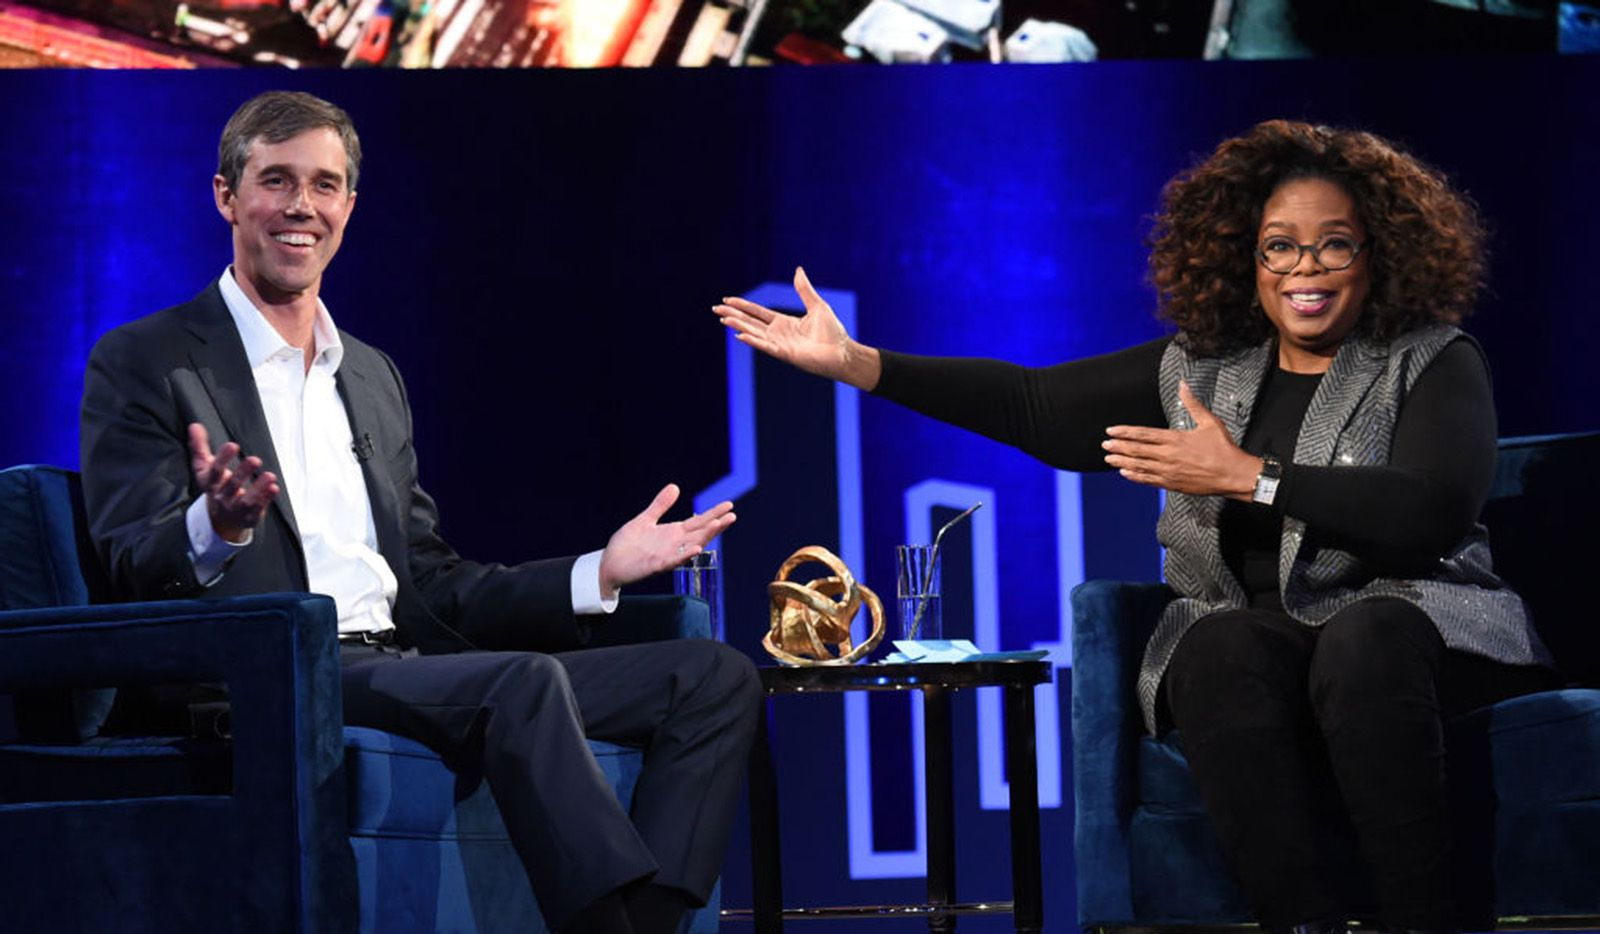 Beto O'Rourke and Oprah Winfrey spoke onstage at Oprah's SuperSoul Conversations at PlayStation Theater on Feb. 5, 2019 in New York City.